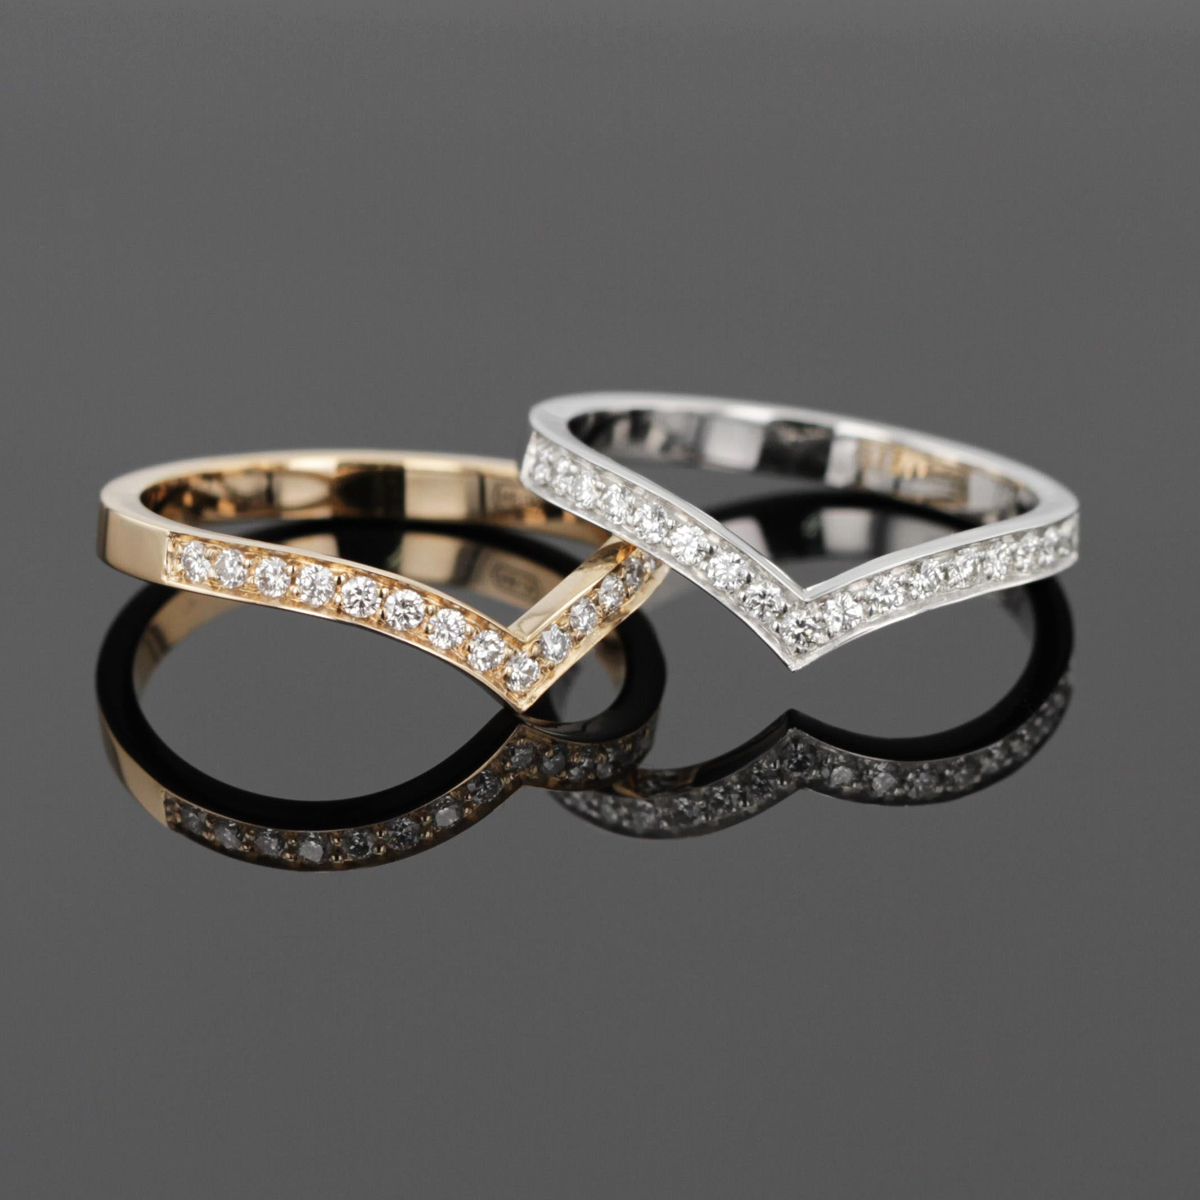 Gold and diamond rings Mauritius